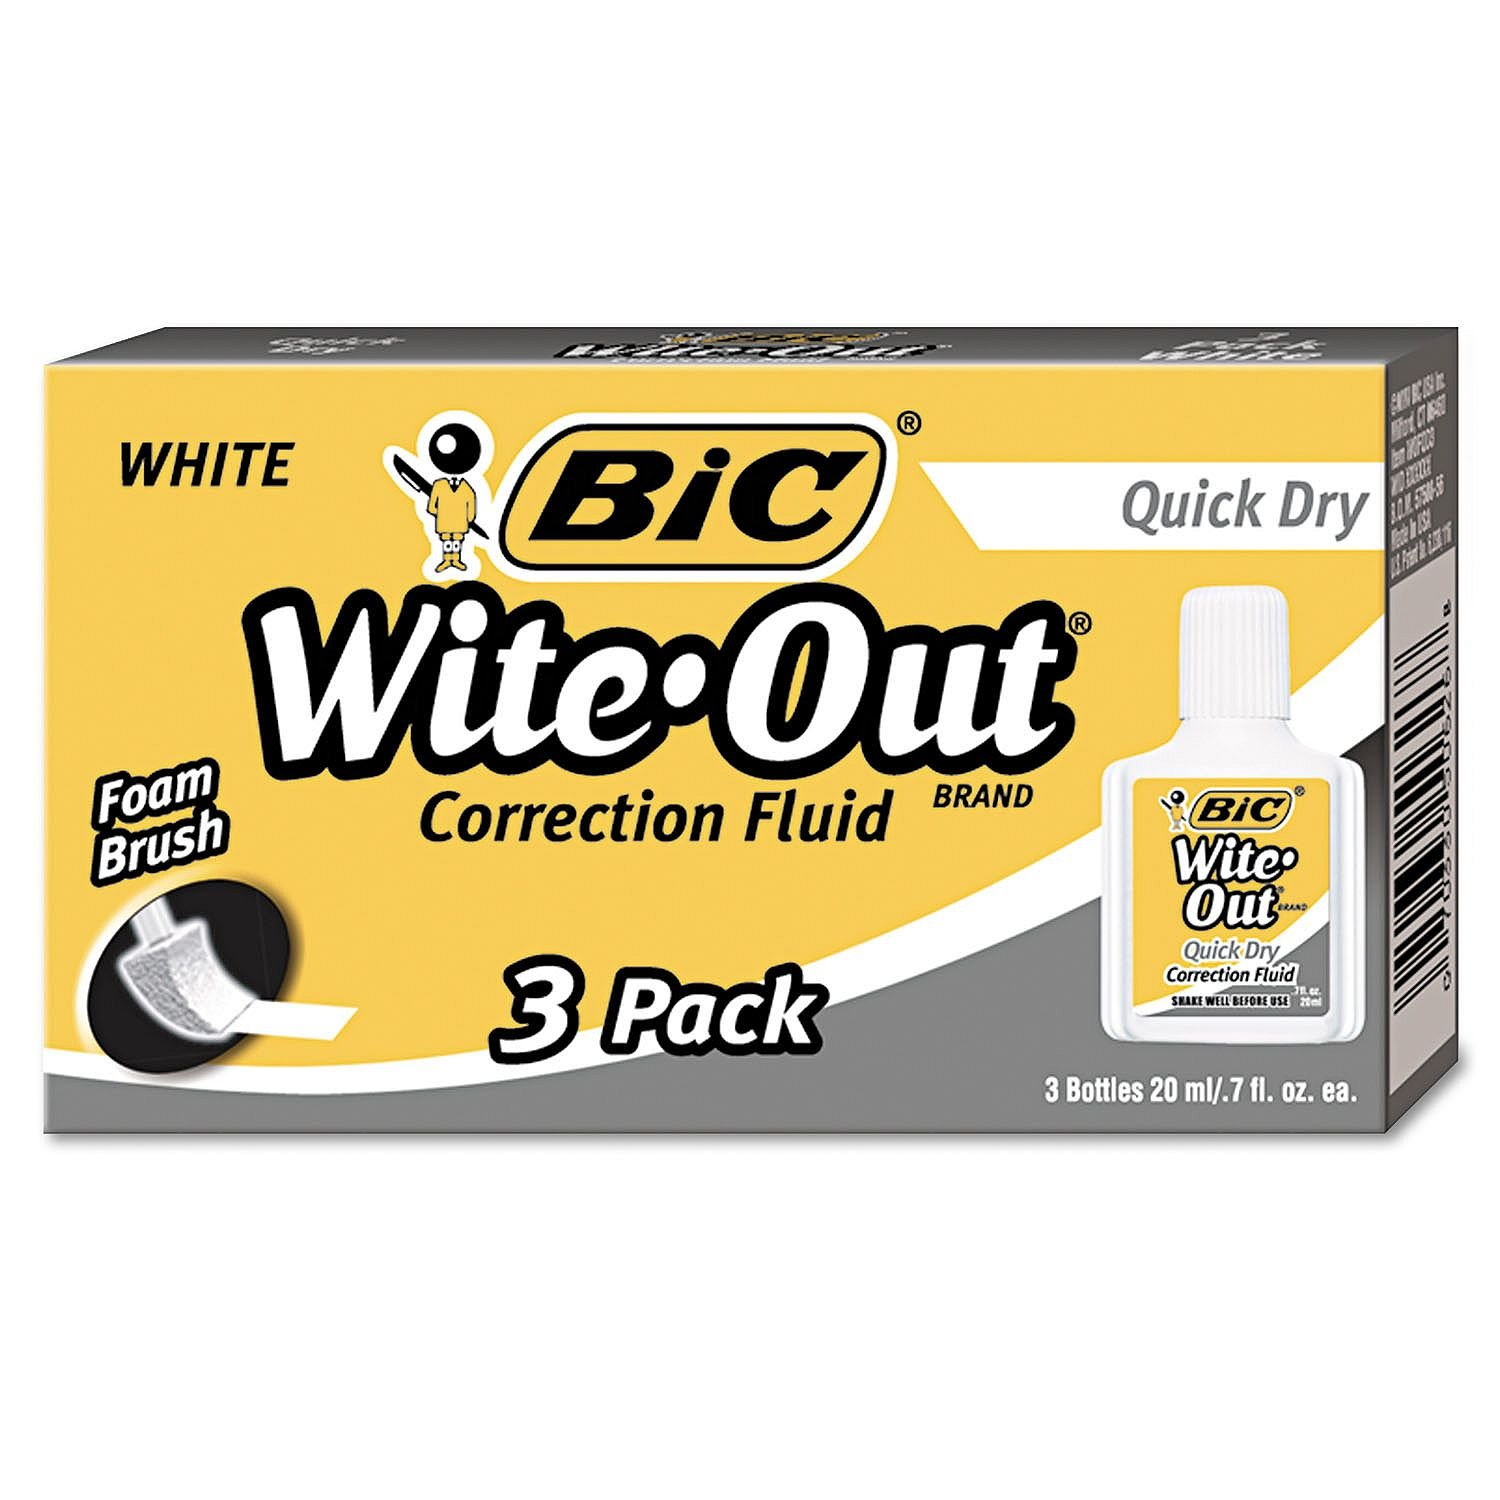 .BIC Wite-Out Quick Dry Correction Fluid, 20 ml Bottle, White, 3pk. - (Original from manufacturer - Bulk Discount available) by BIC